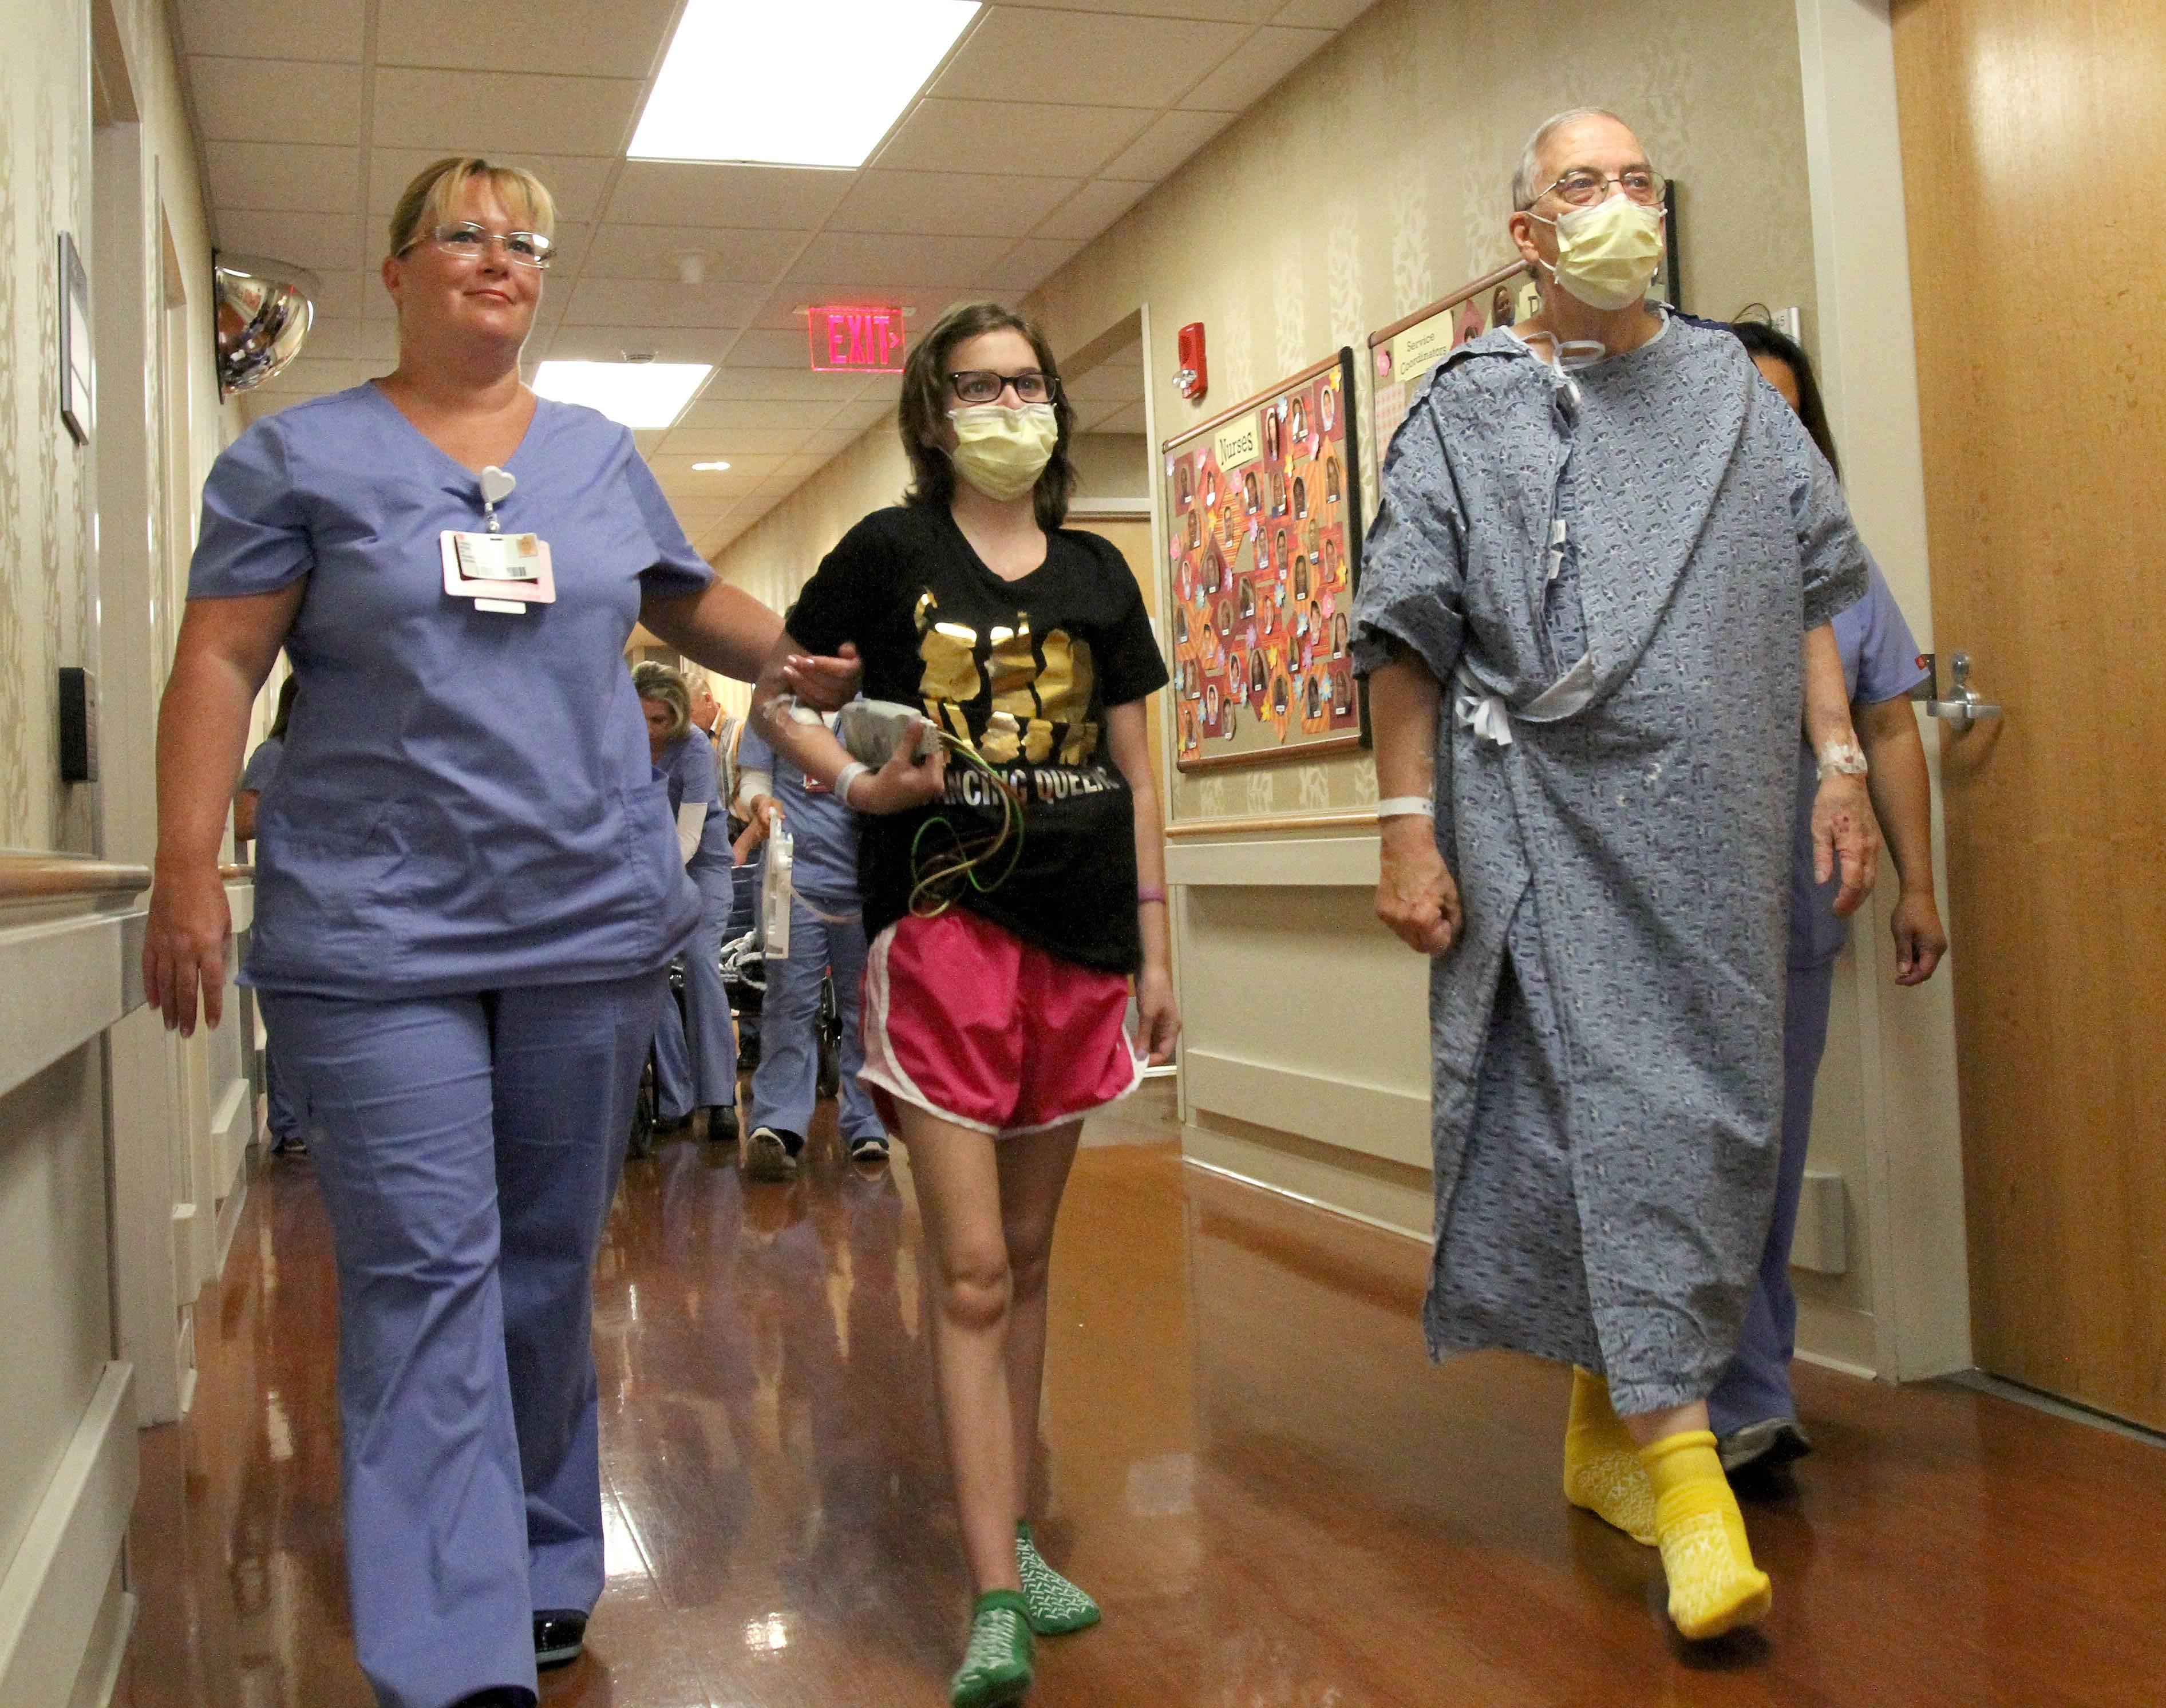 Nurse Theresa Weiss, left, walks Julie D'Agostino of Elmhurst and Robert Senander of Winfield down the hall at Loyola University Medical Center in Maywood. They both had lung transplants and received their lungs from the same donor.